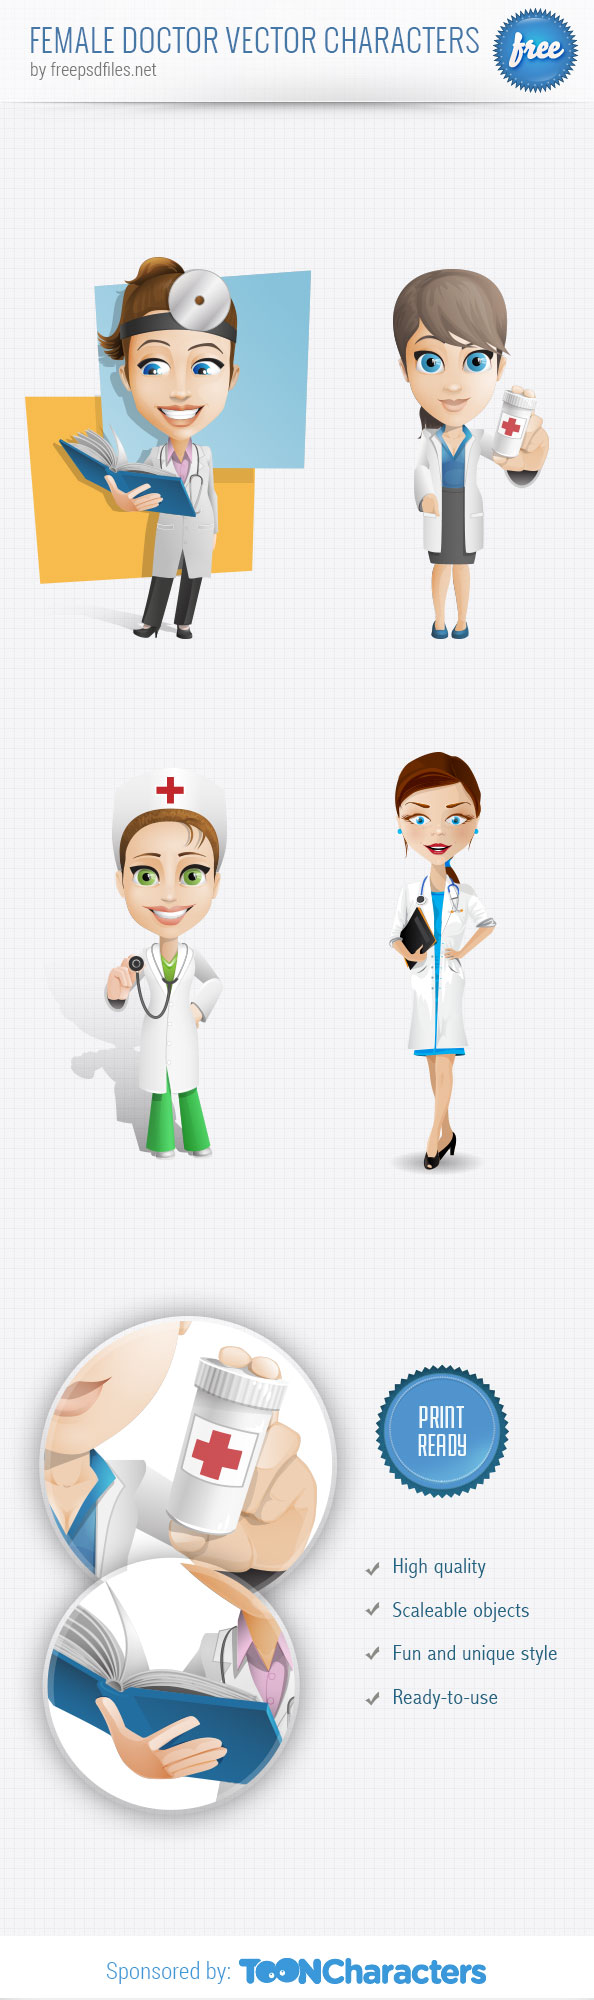 Female Doctor Vector Character Set - Free PSD Files